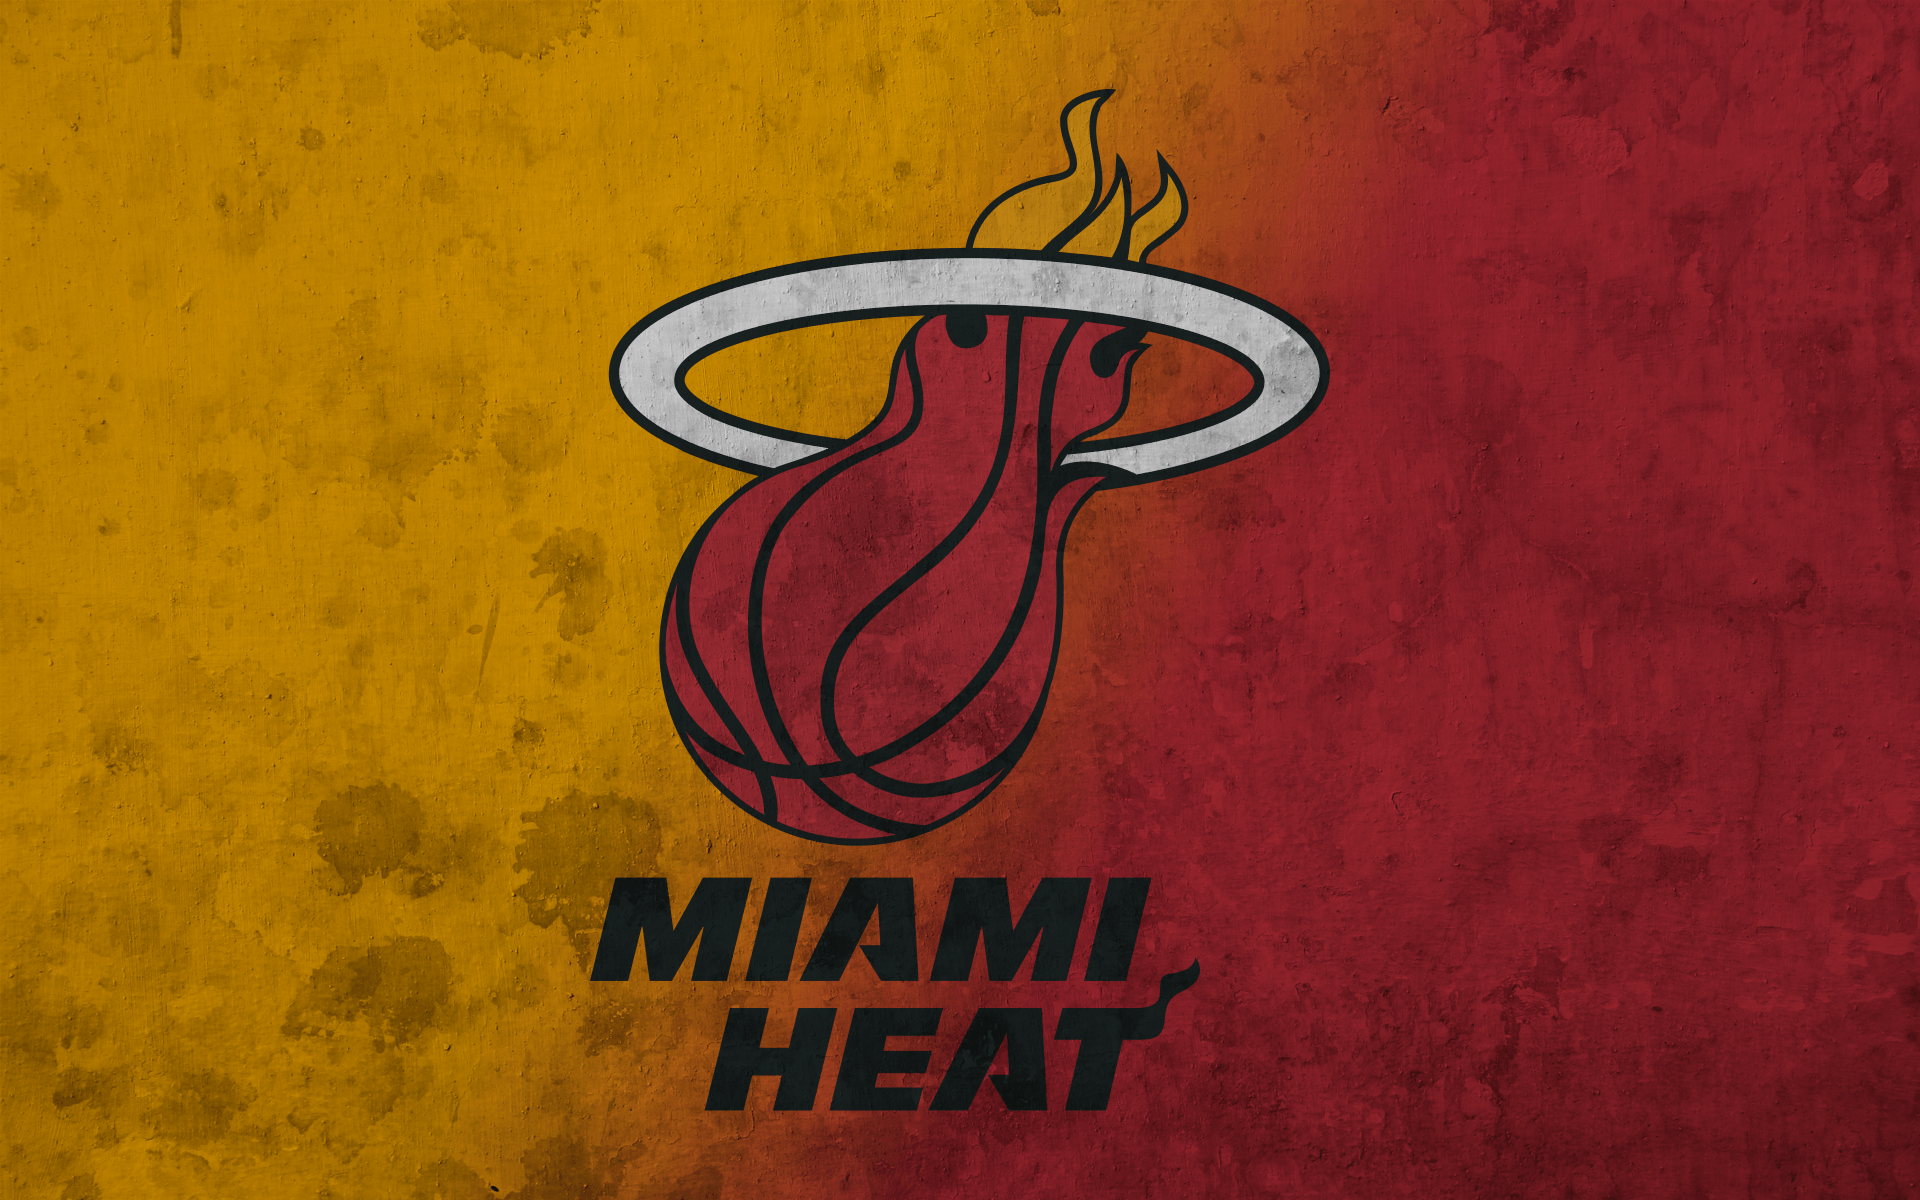 Miami Heat Wallpapers HD 2016 - Wallpaper Cave